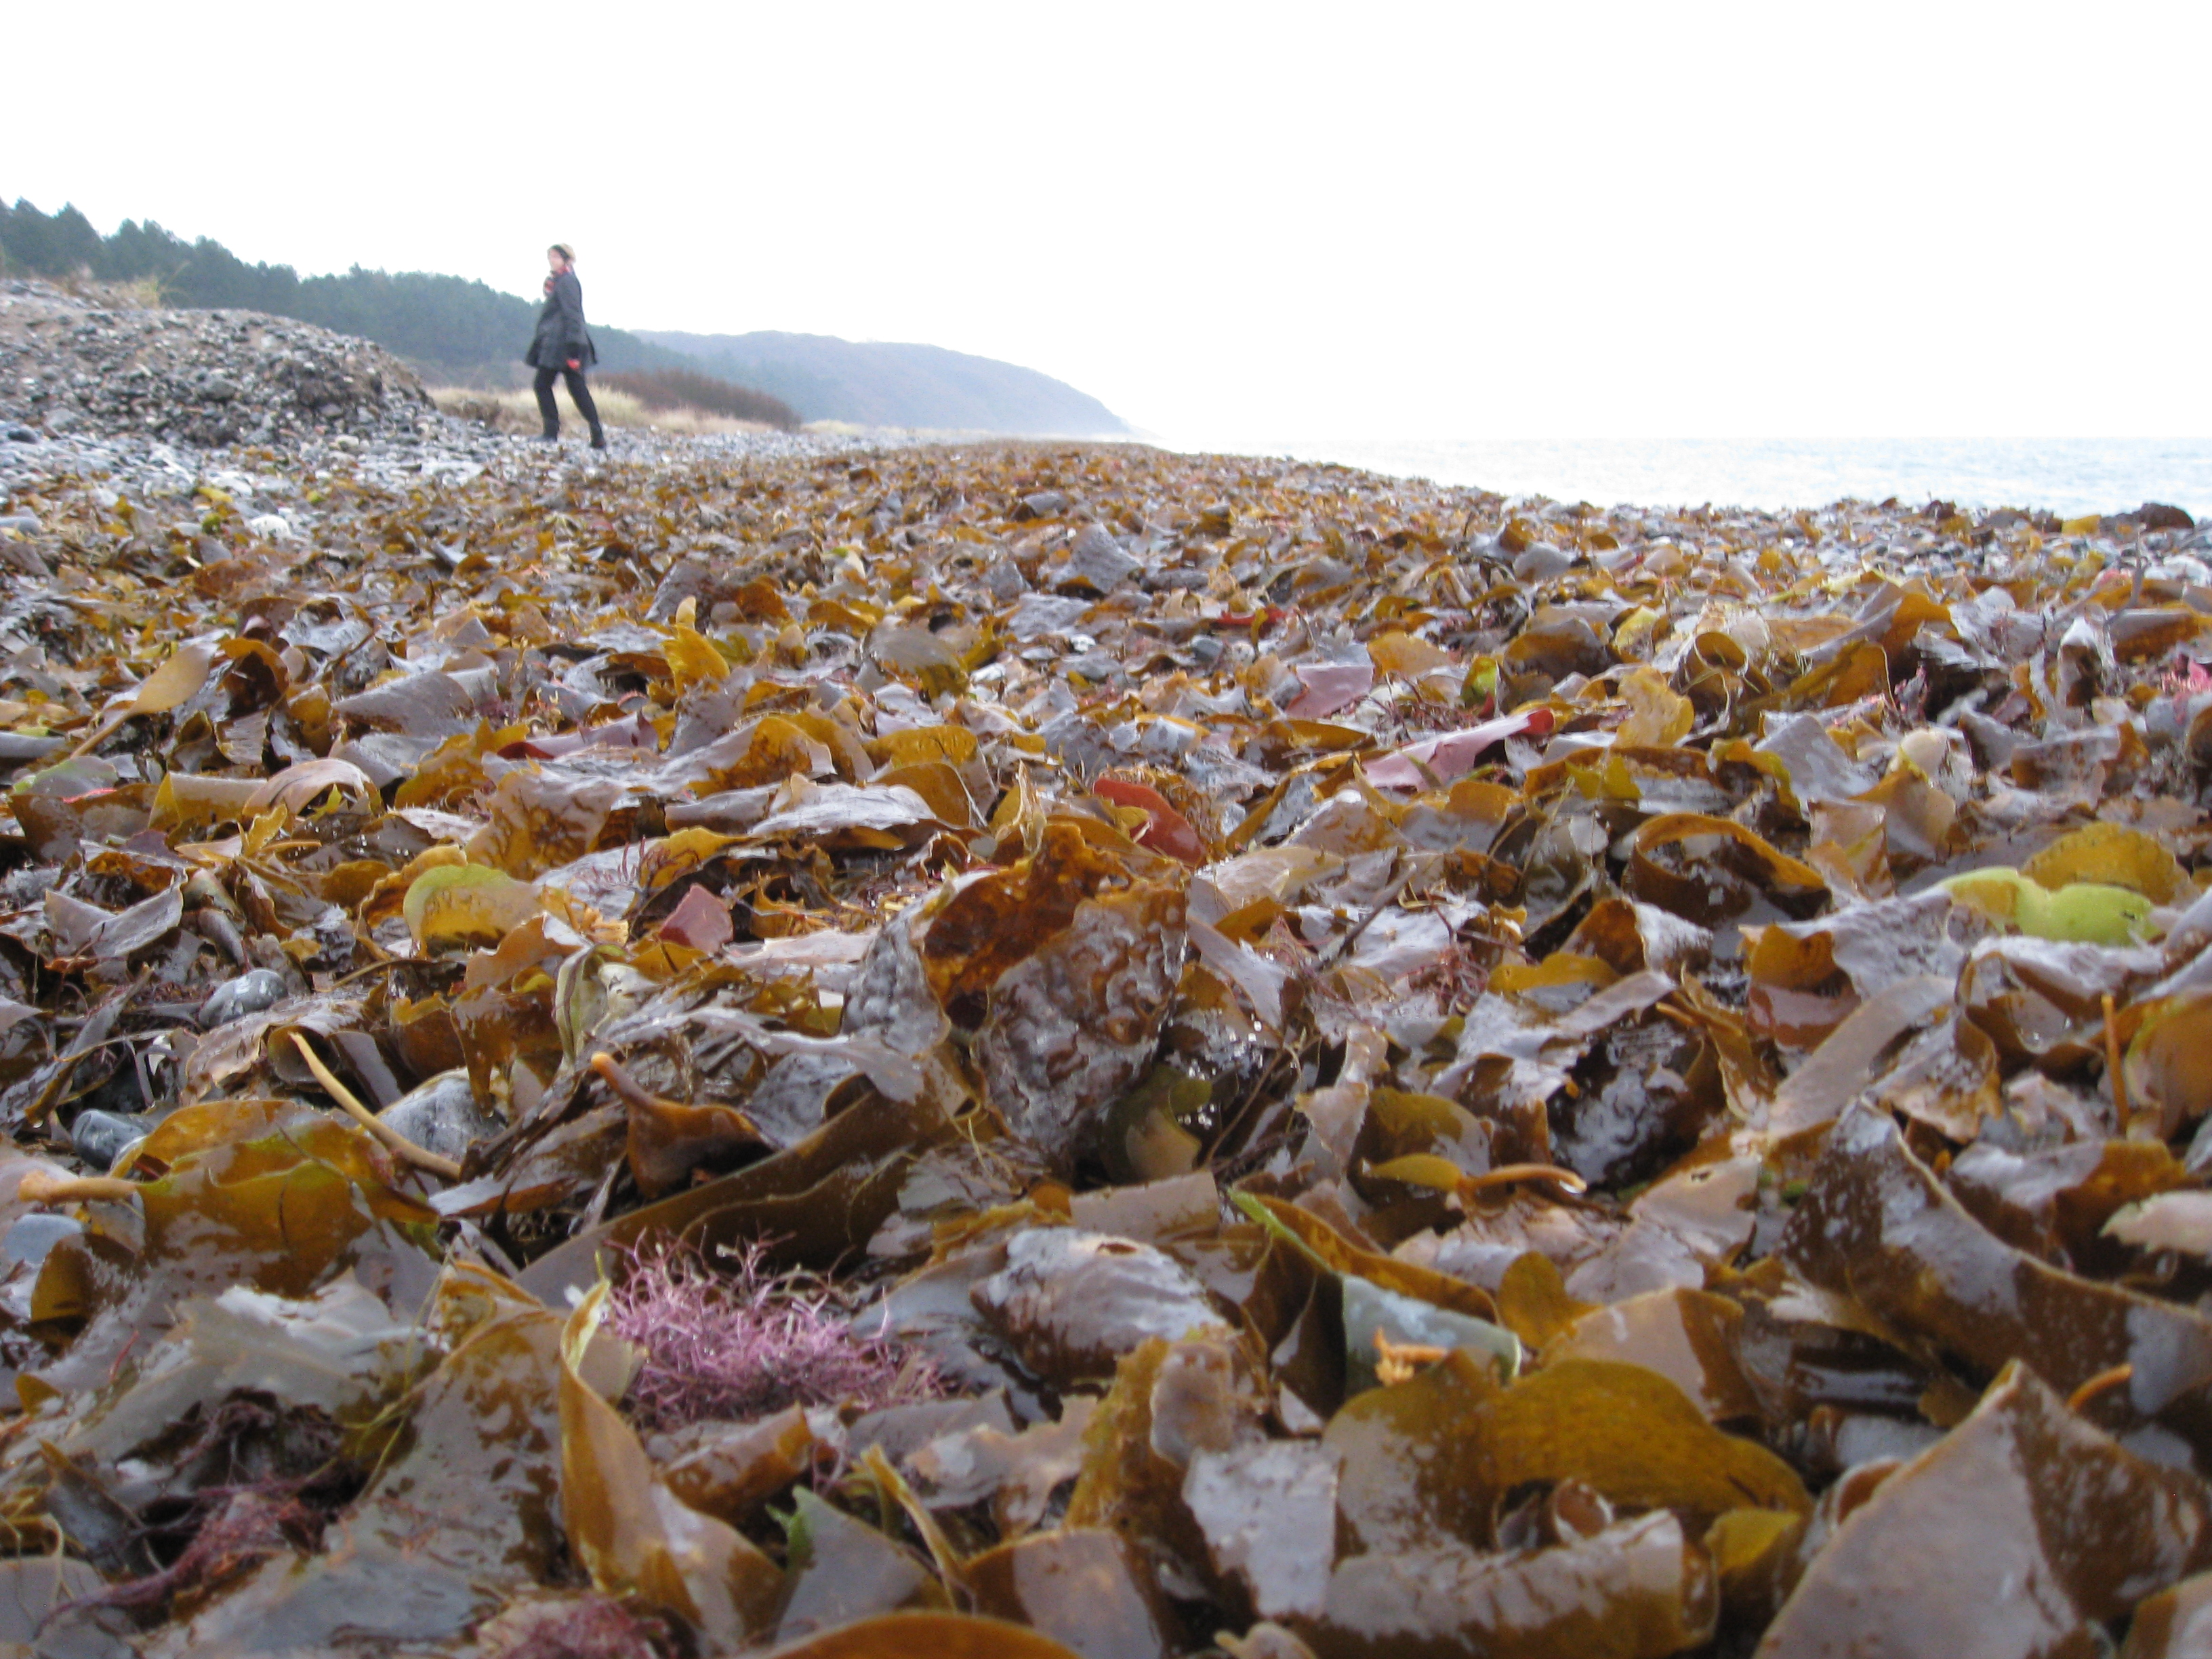 Holding fast: kelp in Nova Scotia tries to grow on turf algae after a period of decline